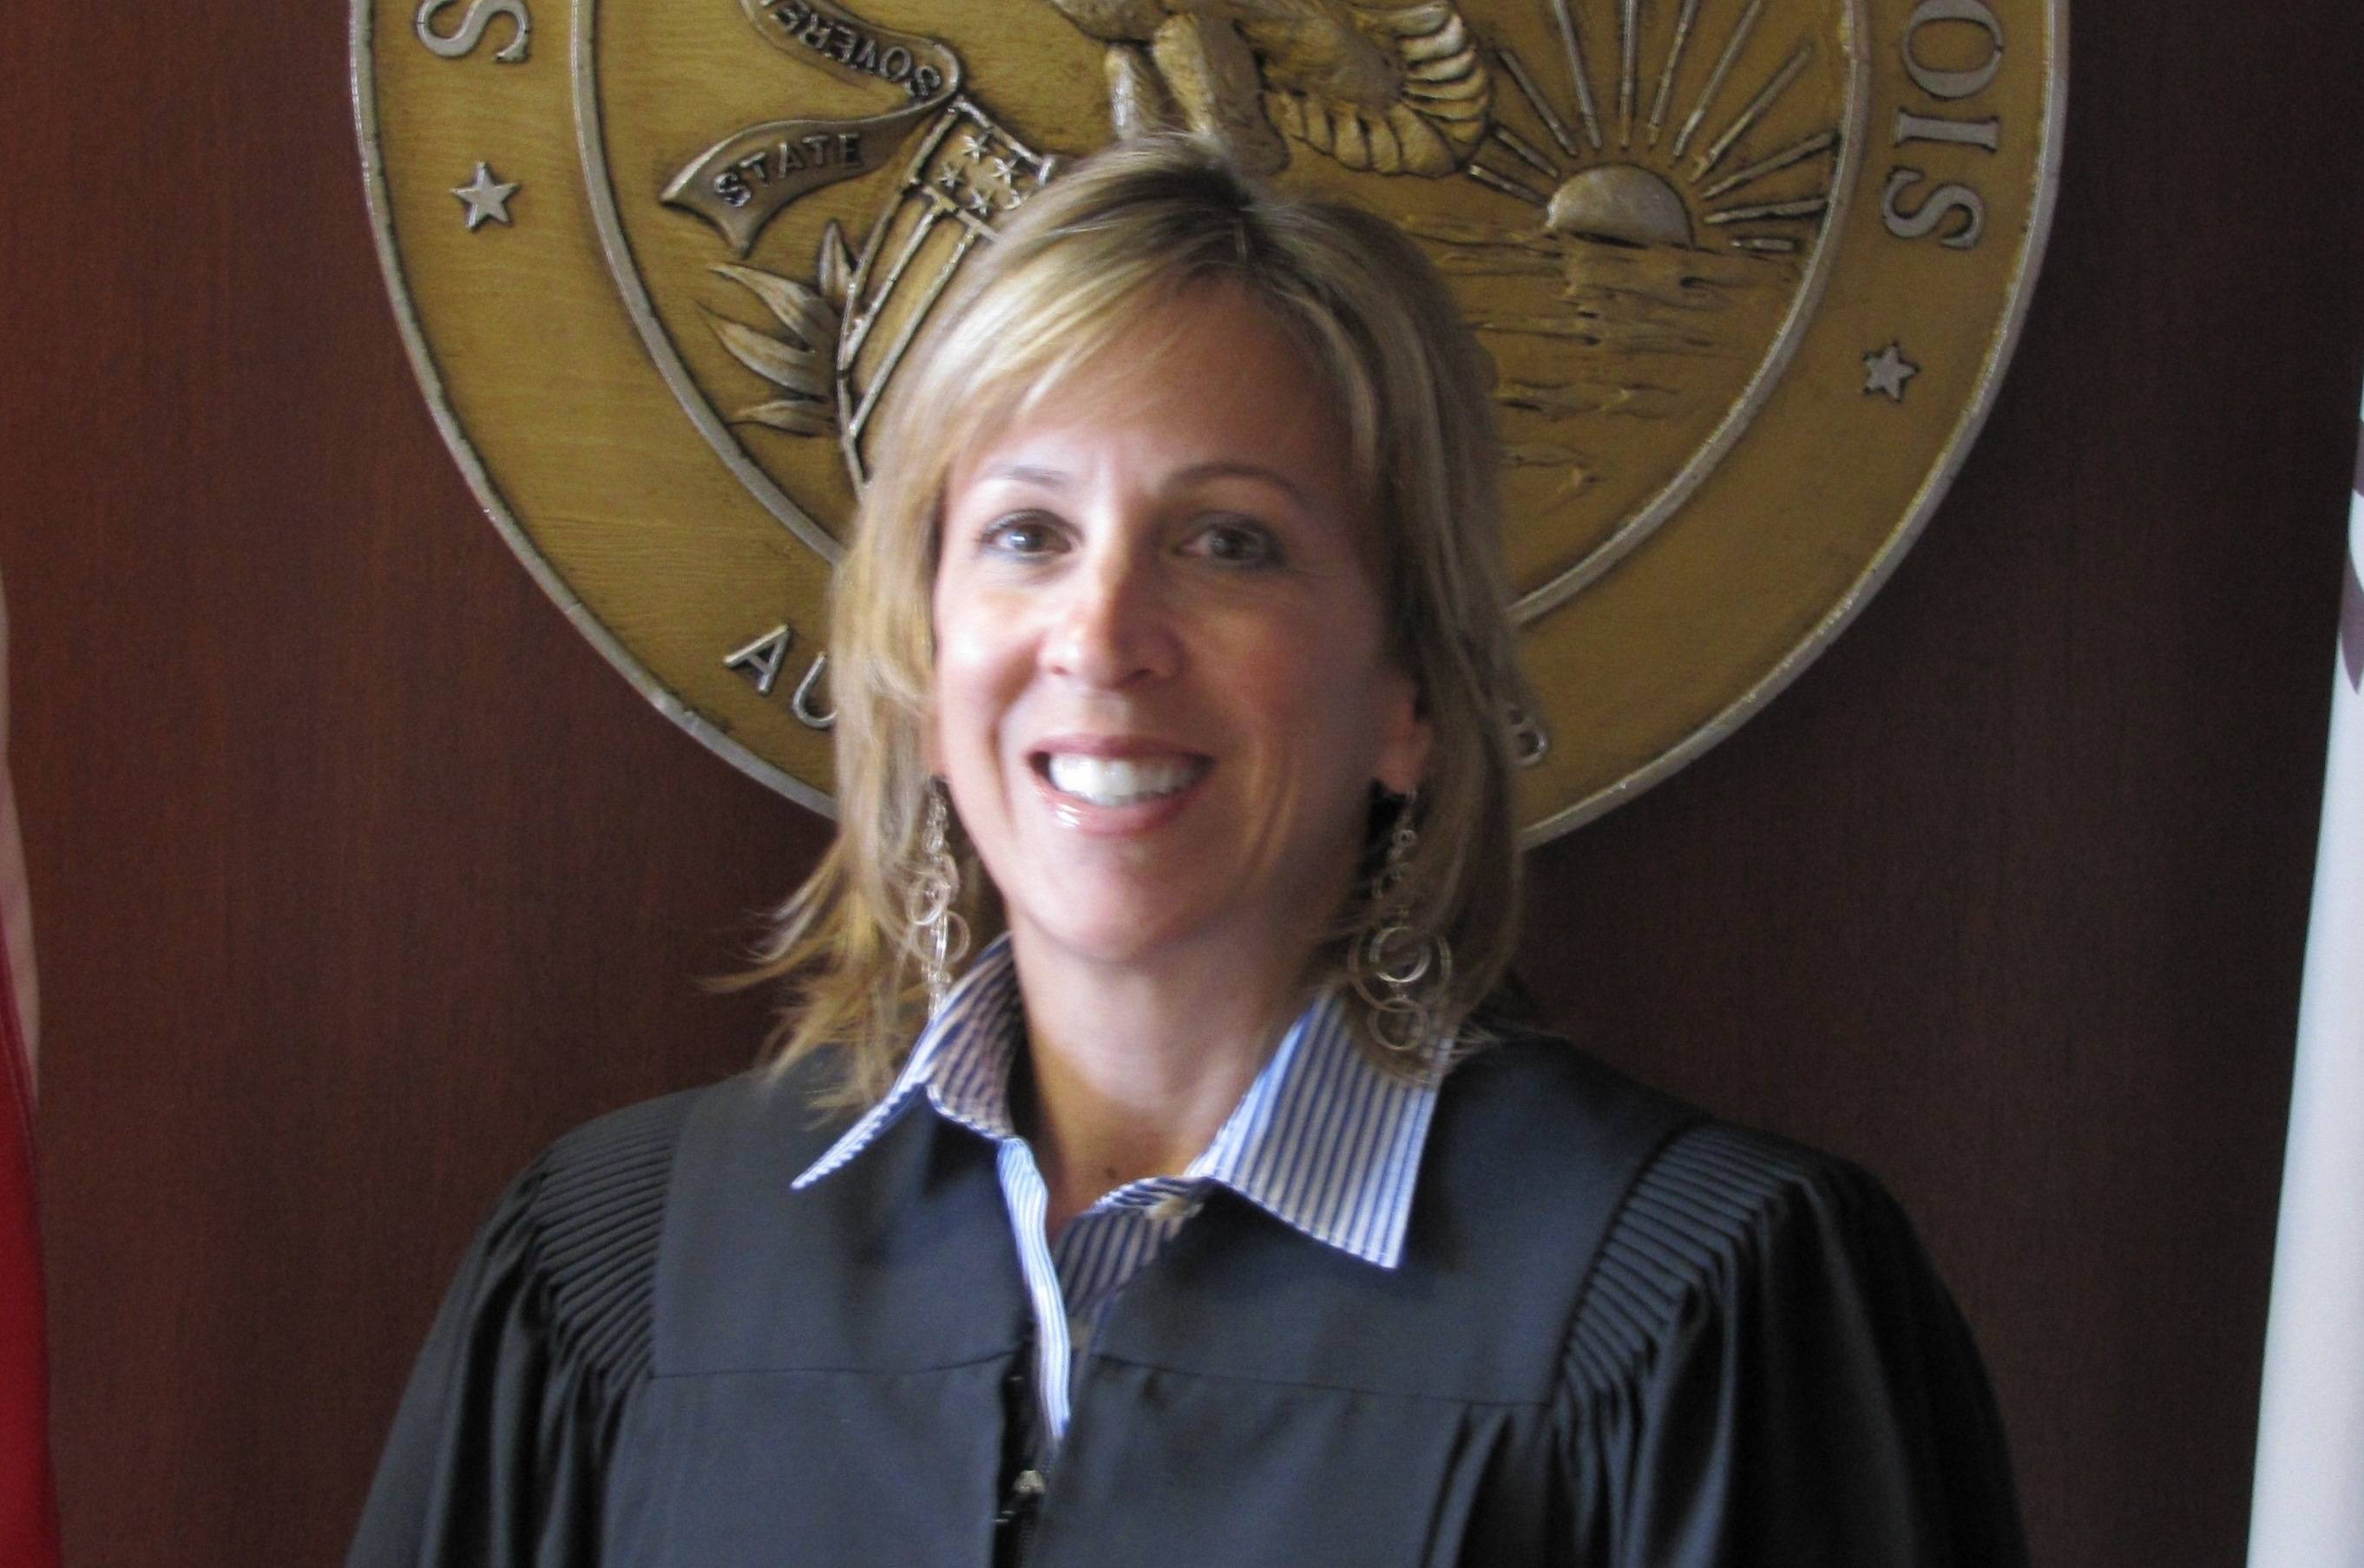 Kay Hanlon, running for Appellate Court 1st District (Cahill)